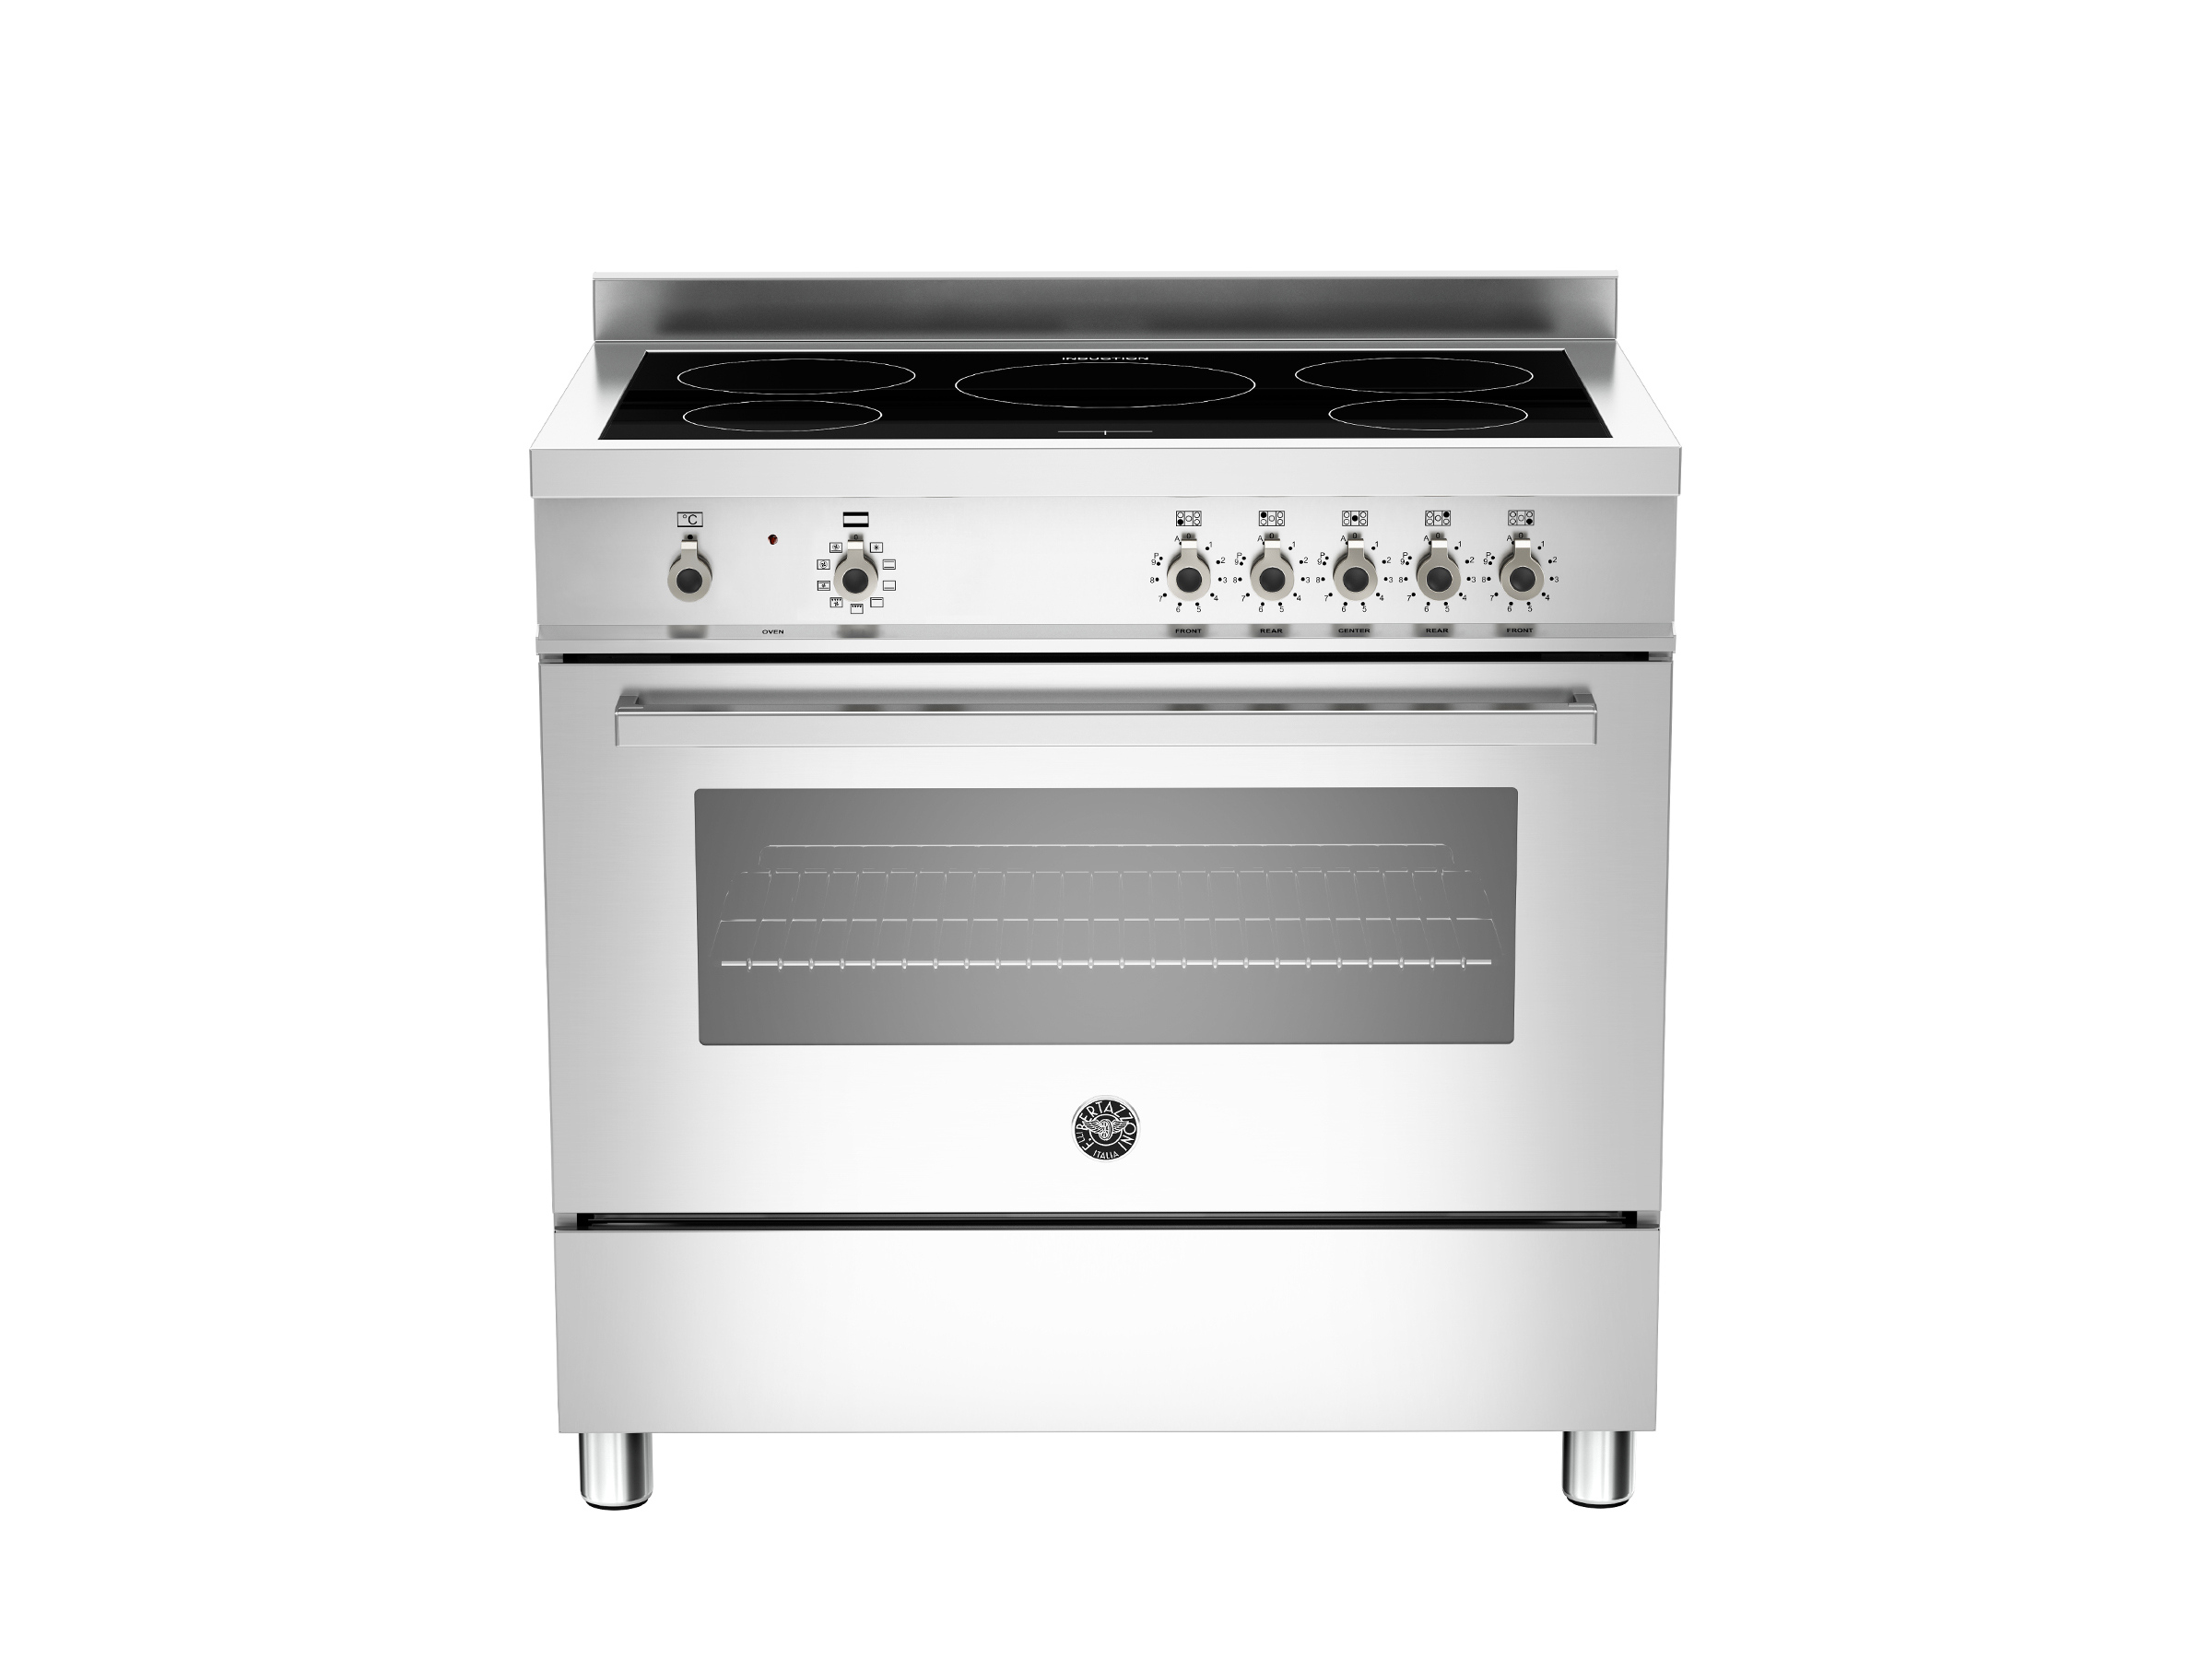 90 cm induction top, Electric Oven | Bertazzoni - Stainless